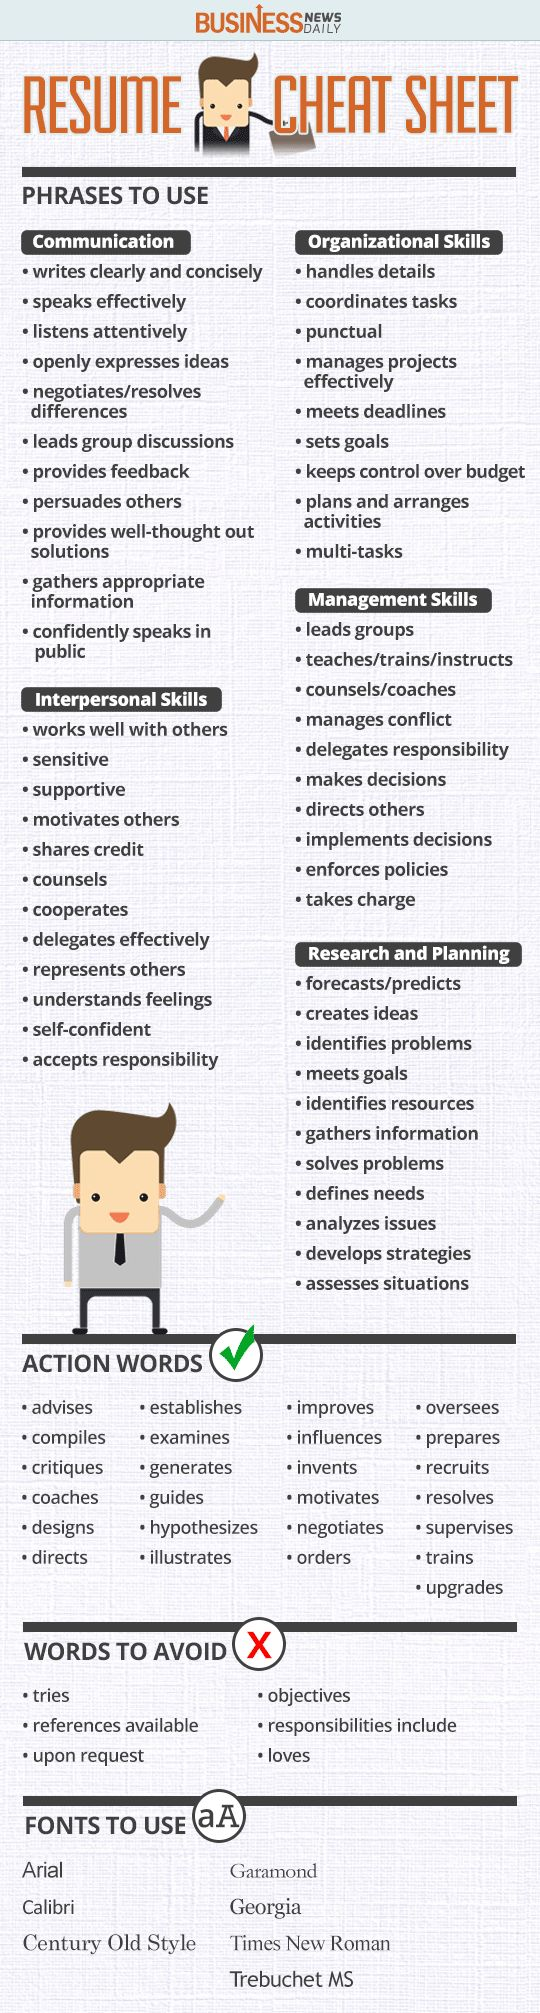 Opposenewapstandardsus  Marvellous  Ideas About Resume On Pinterest  Cv Format Resume Cv And  With Exciting Resume Cheat Sheet Infographic Andrews Almost Done With A Complete Unit On Employment Which With Captivating Job Descriptions For Resumes Also Competency Based Resume In Addition Examples Of Resume Objective Statements And Digital Strategist Resume As Well As Dental Hygiene Resume Examples Additionally Sample Accounts Payable Resume From Pinterestcom With Opposenewapstandardsus  Exciting  Ideas About Resume On Pinterest  Cv Format Resume Cv And  With Captivating Resume Cheat Sheet Infographic Andrews Almost Done With A Complete Unit On Employment Which And Marvellous Job Descriptions For Resumes Also Competency Based Resume In Addition Examples Of Resume Objective Statements From Pinterestcom